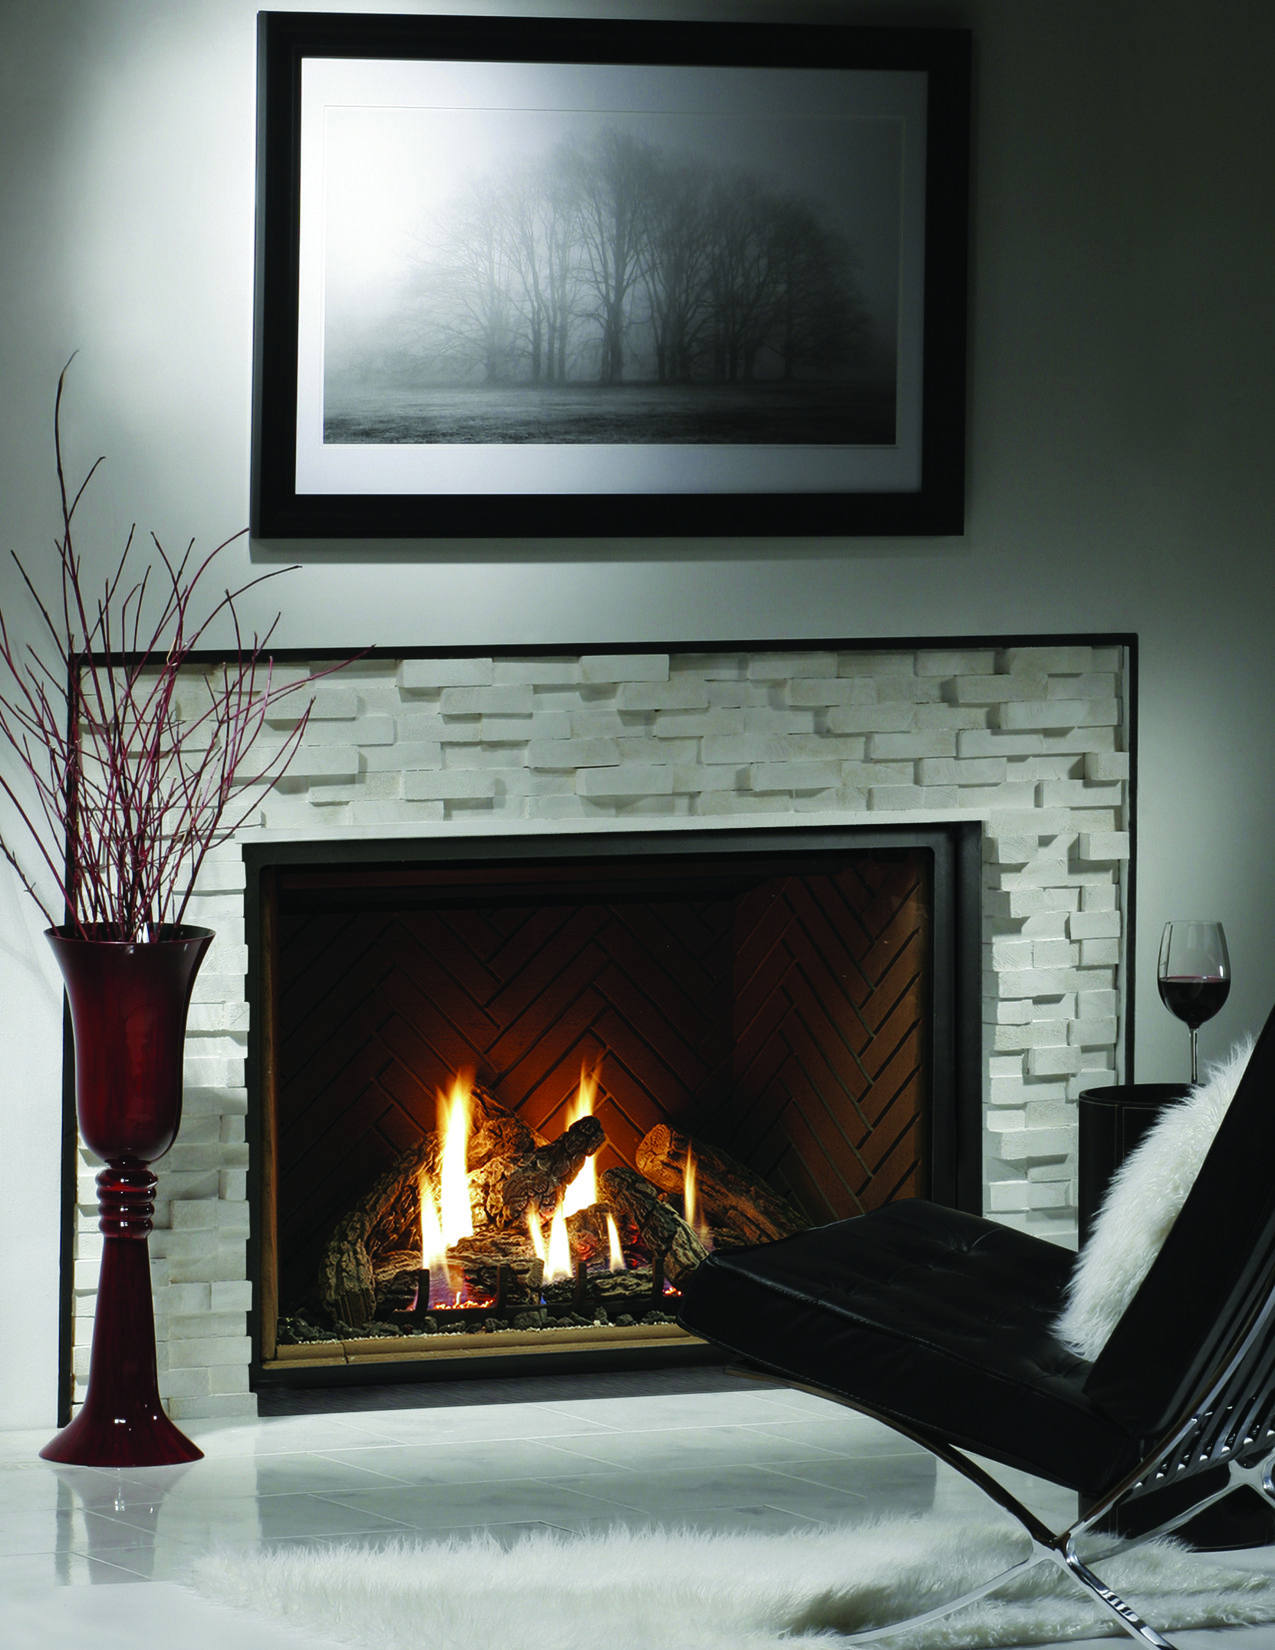 gas visit gasfireplacesbarrie outlet ontario official barrie website click of fireplace here the kingsman ca to